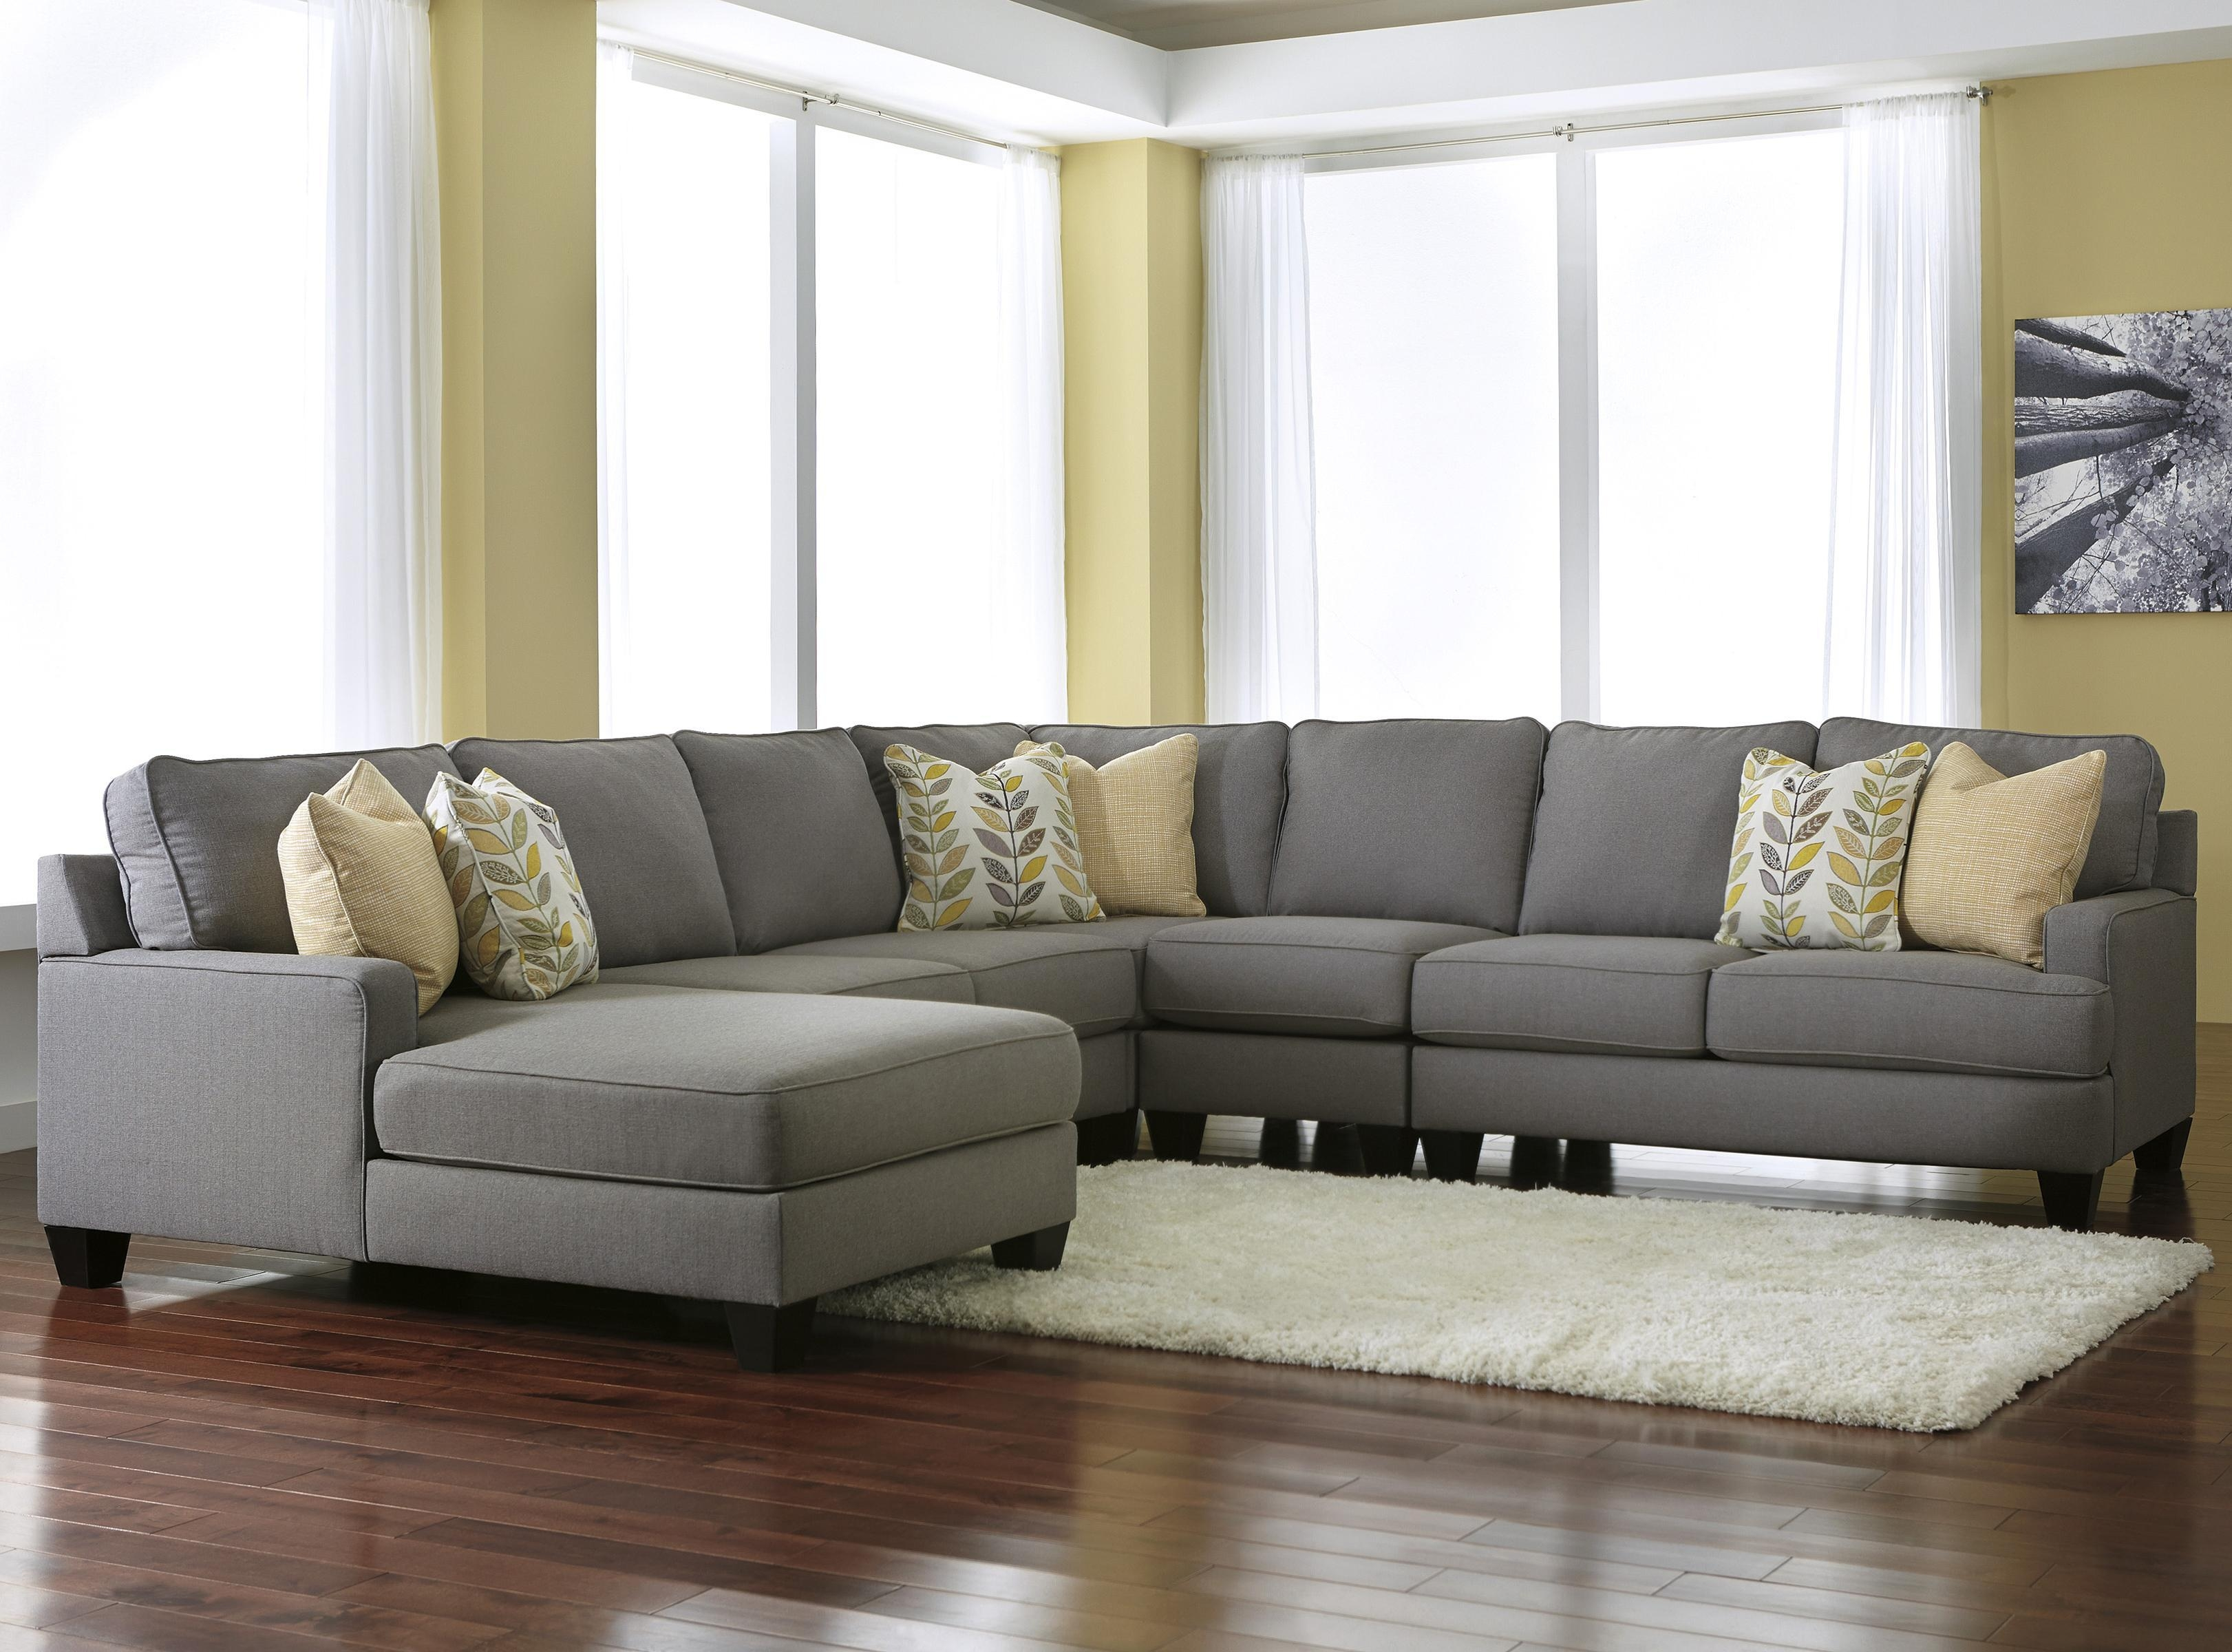 Signature Designashley Chamberly – Alloy Modern 5 Piece With Regard To Signature Design Sectional Sofas (View 7 of 20)